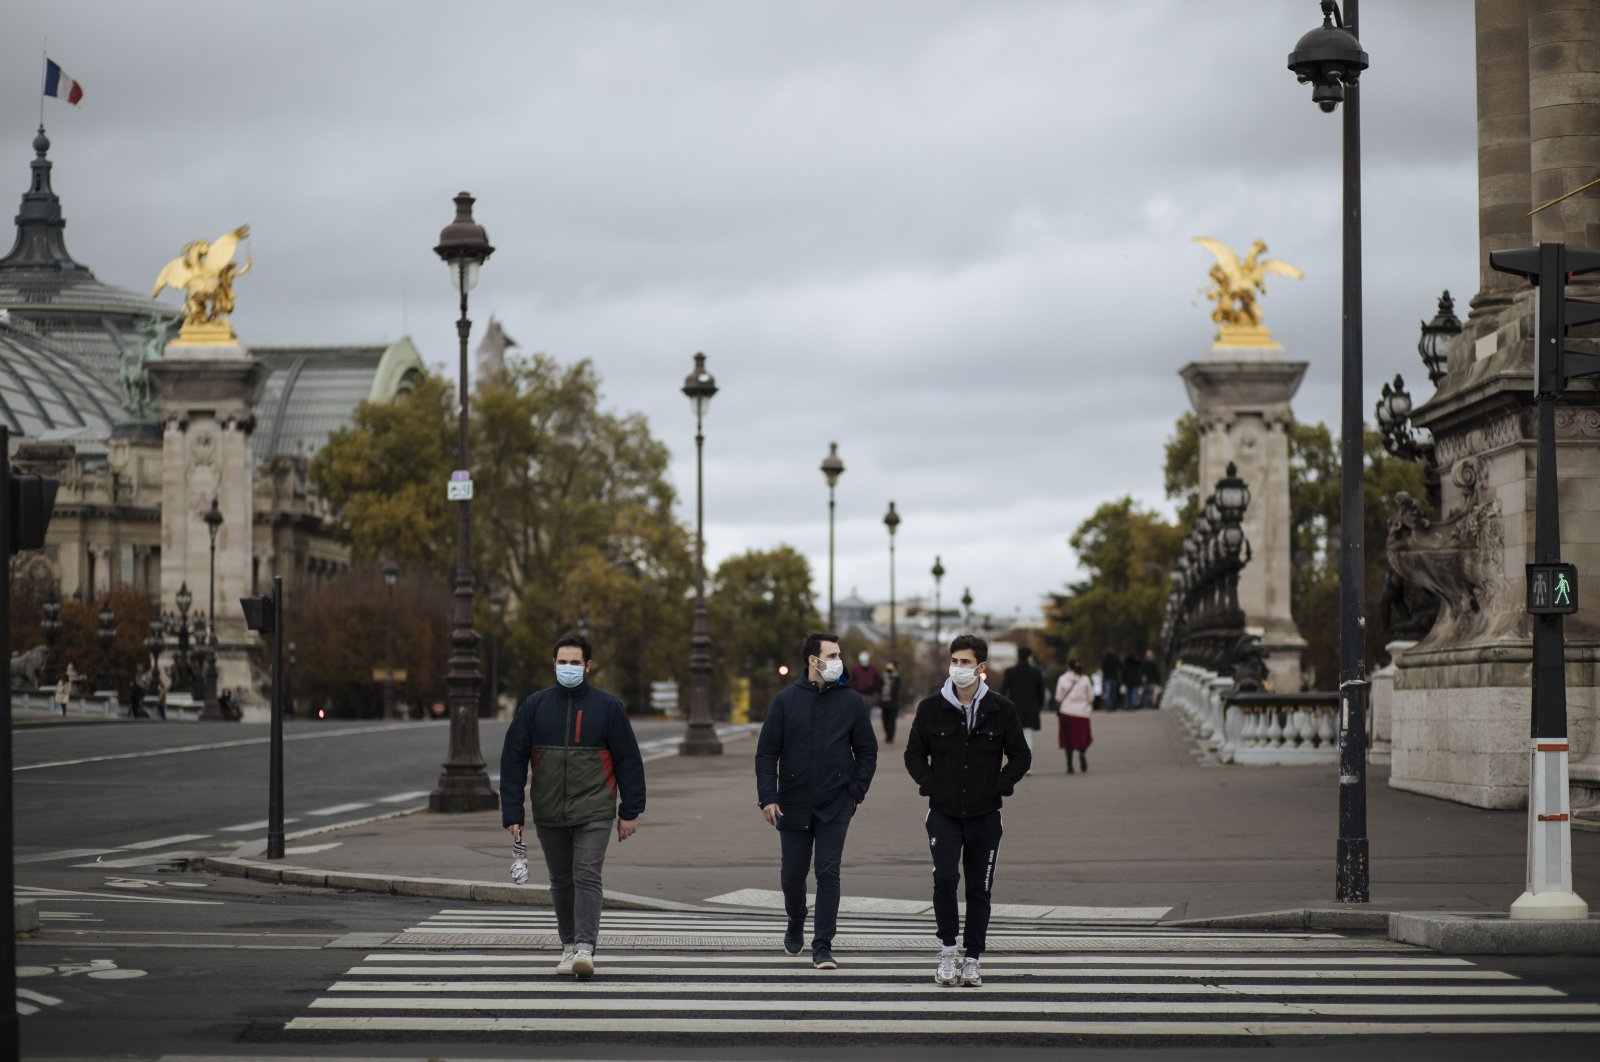 People wearing masks walk in the Invalides district of Paris, Oct. 25, 2020. (AP Photo)